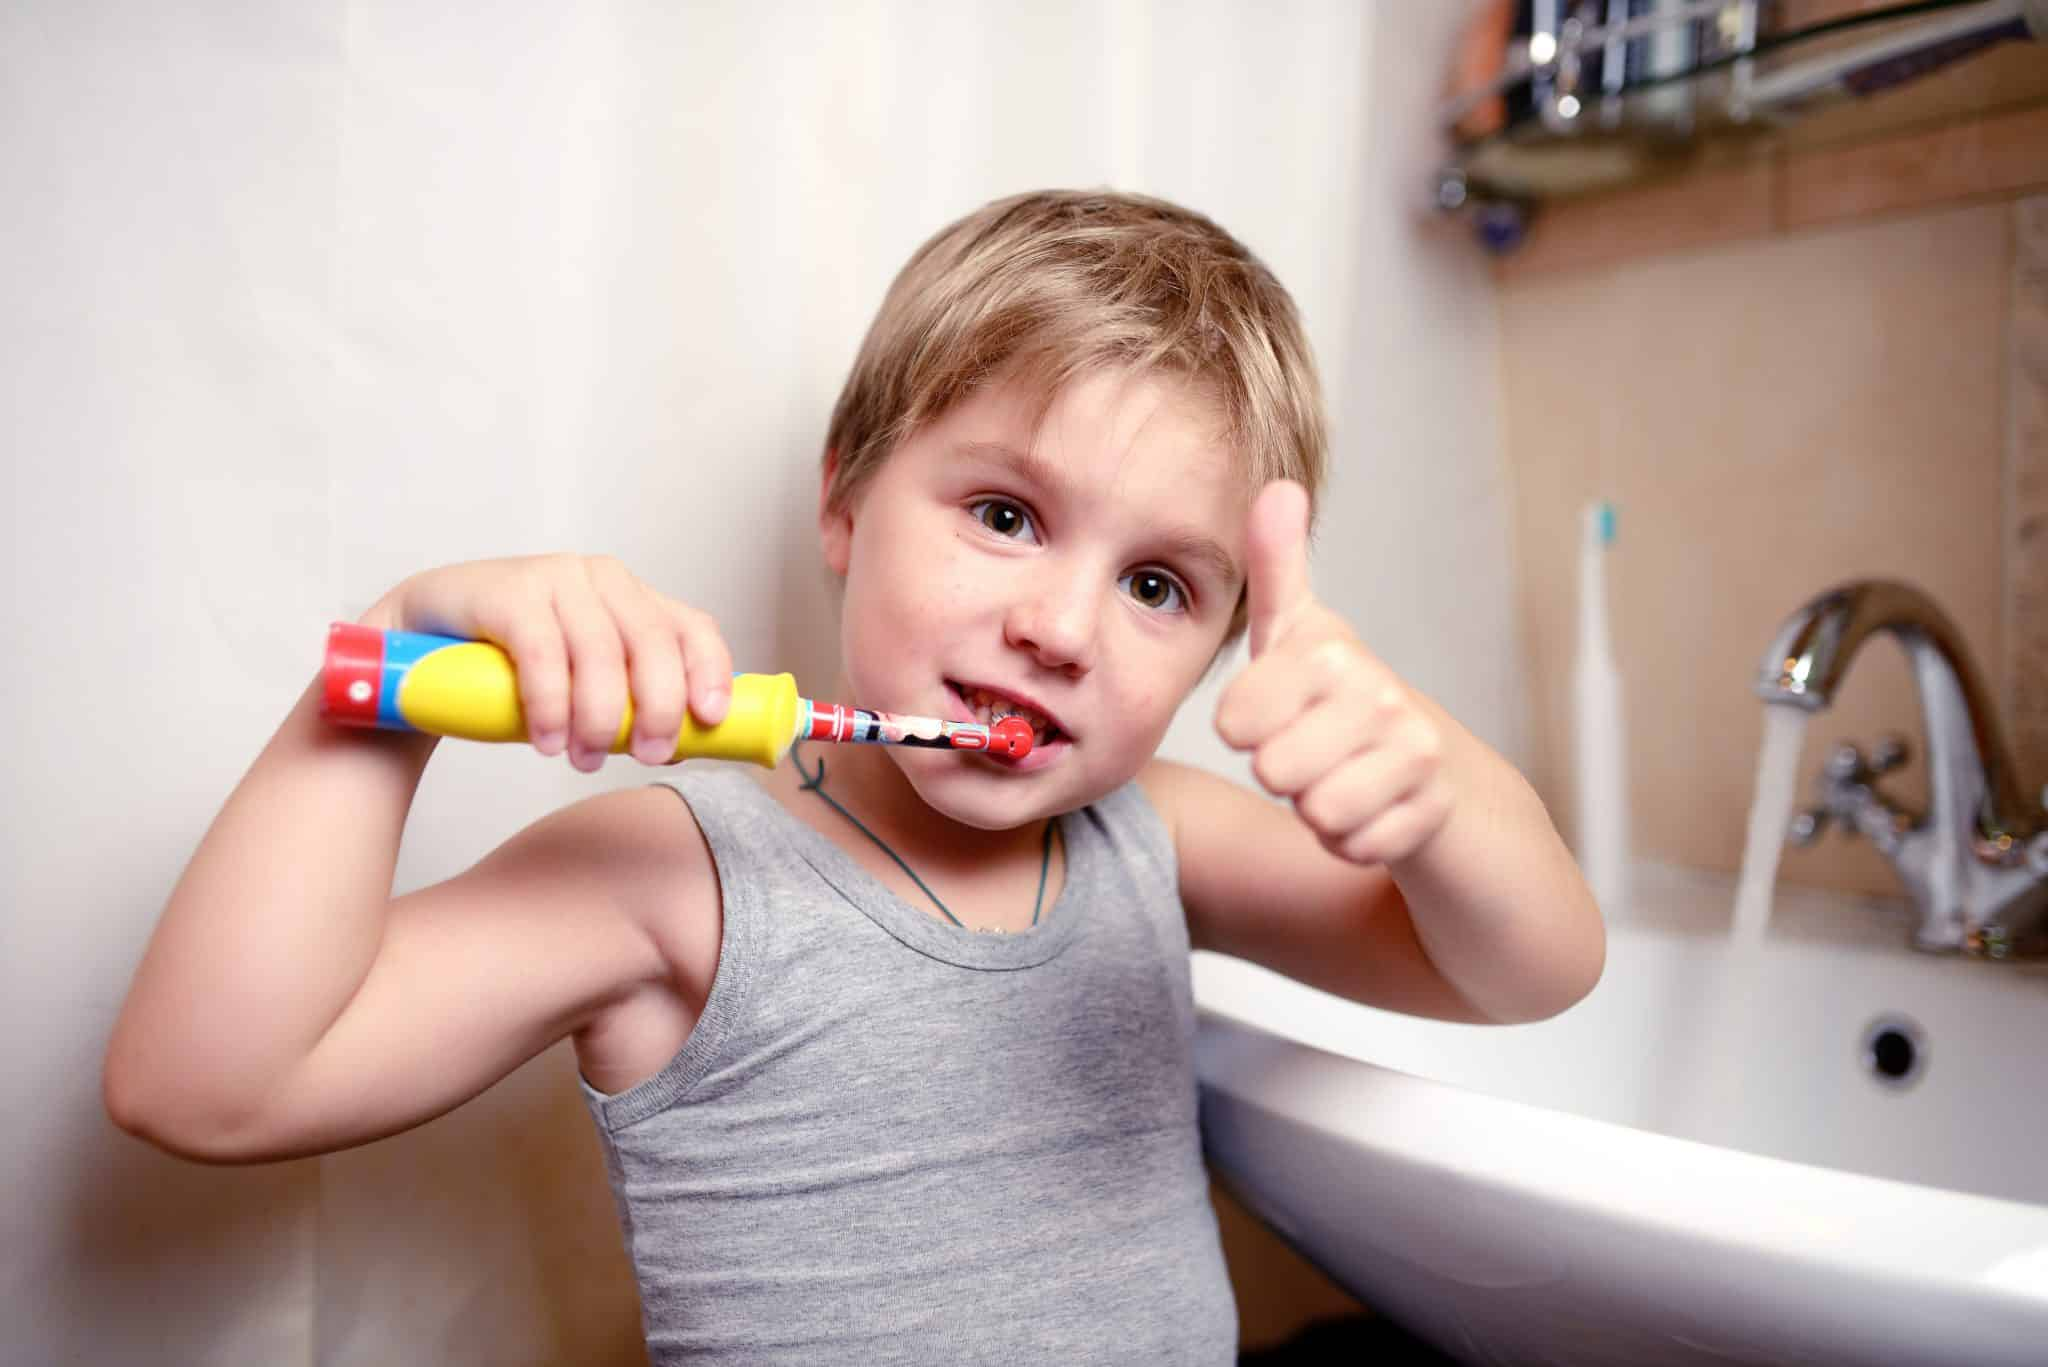 Child with electric toothbrush